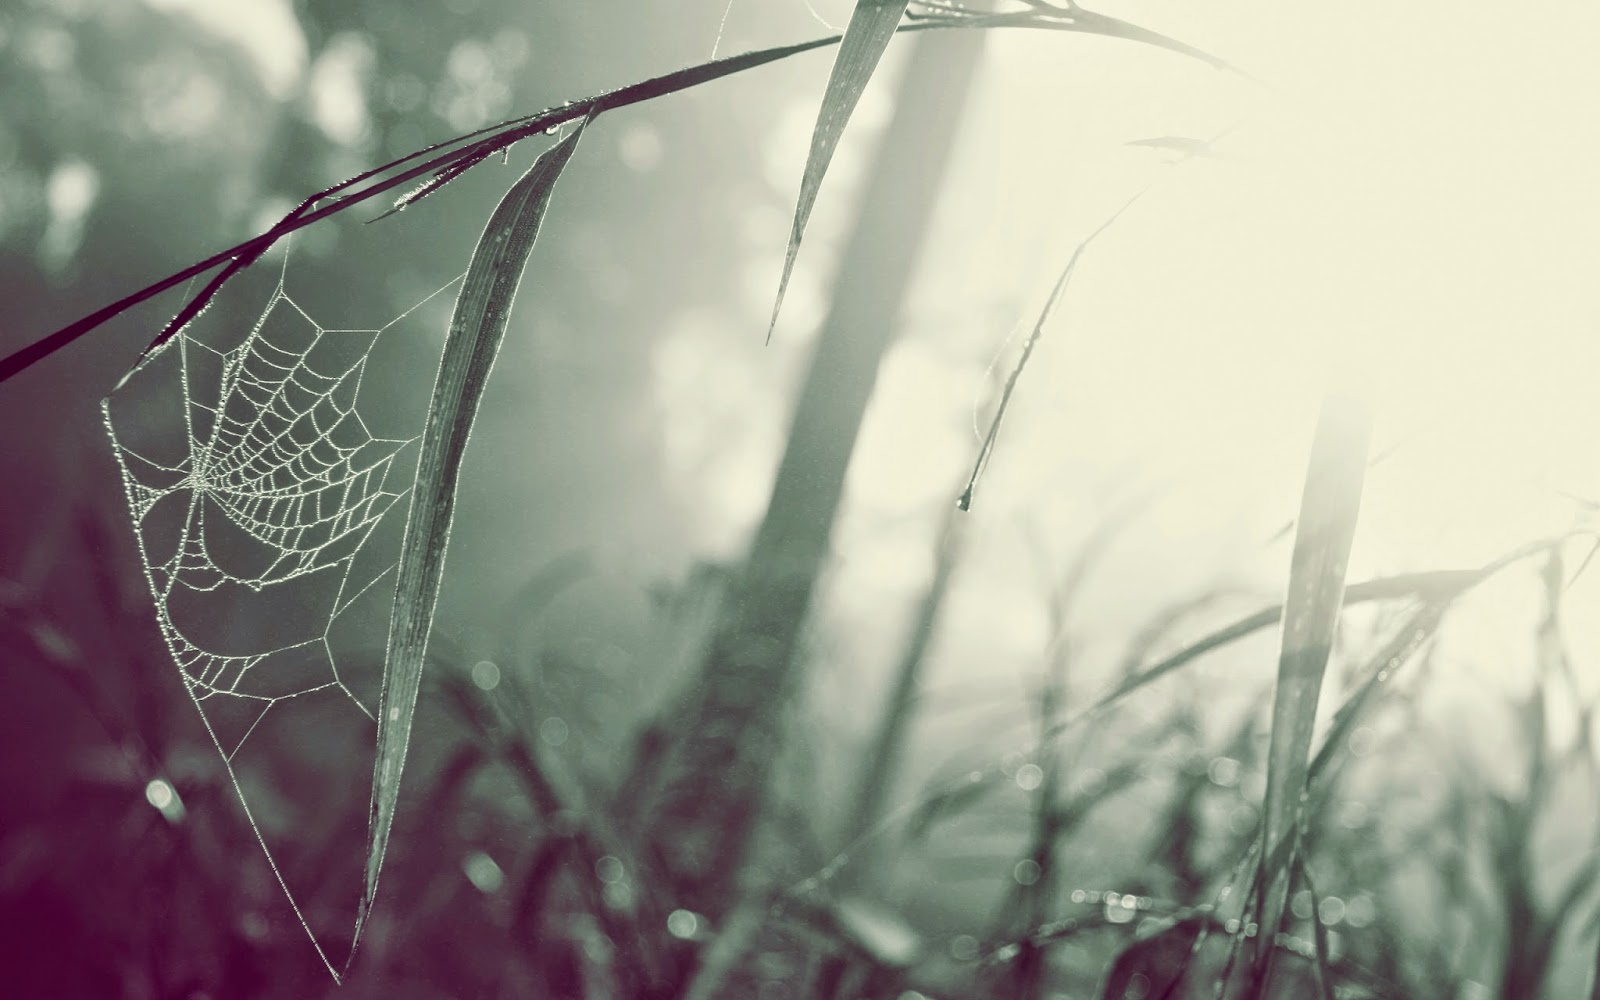 Wallpapers HD 1080p Free Download For Mobile, Windows 7, Windows 8 , 1366x768 ~ Get All Kind of ...